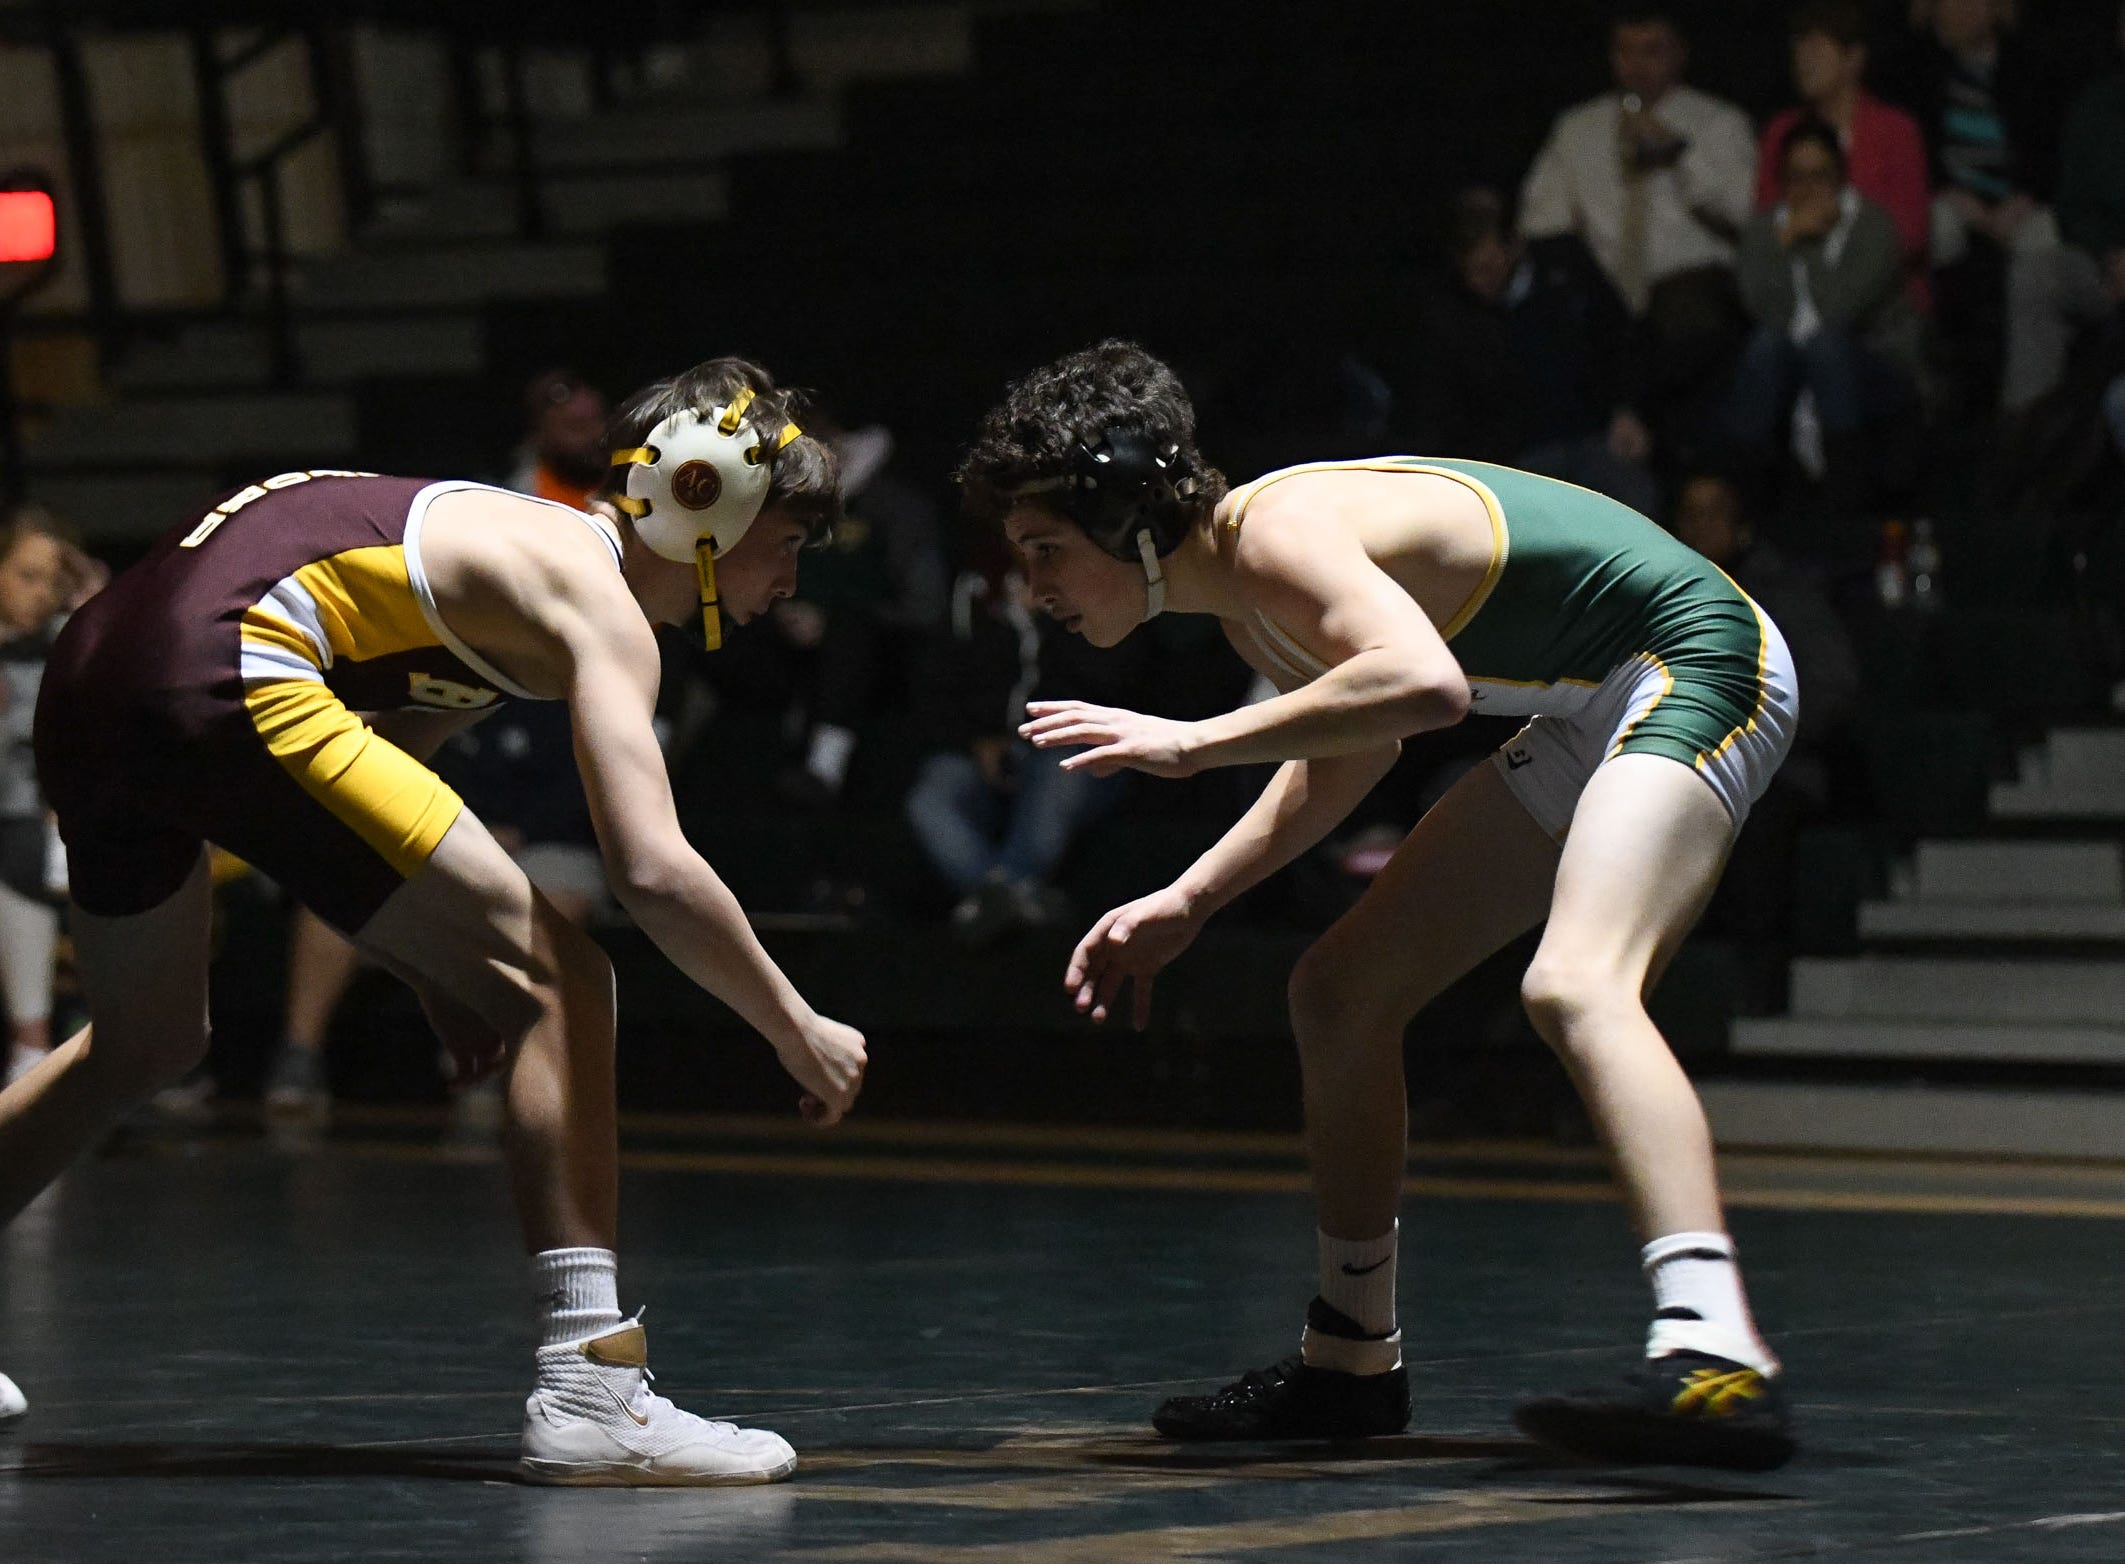 Indian River's Chris Saylor battled Milford's Corey Messick during the 106lb match on Thursday, Jan 17, 2019 in Dagsboro, Del. Milford won the match 53-15.